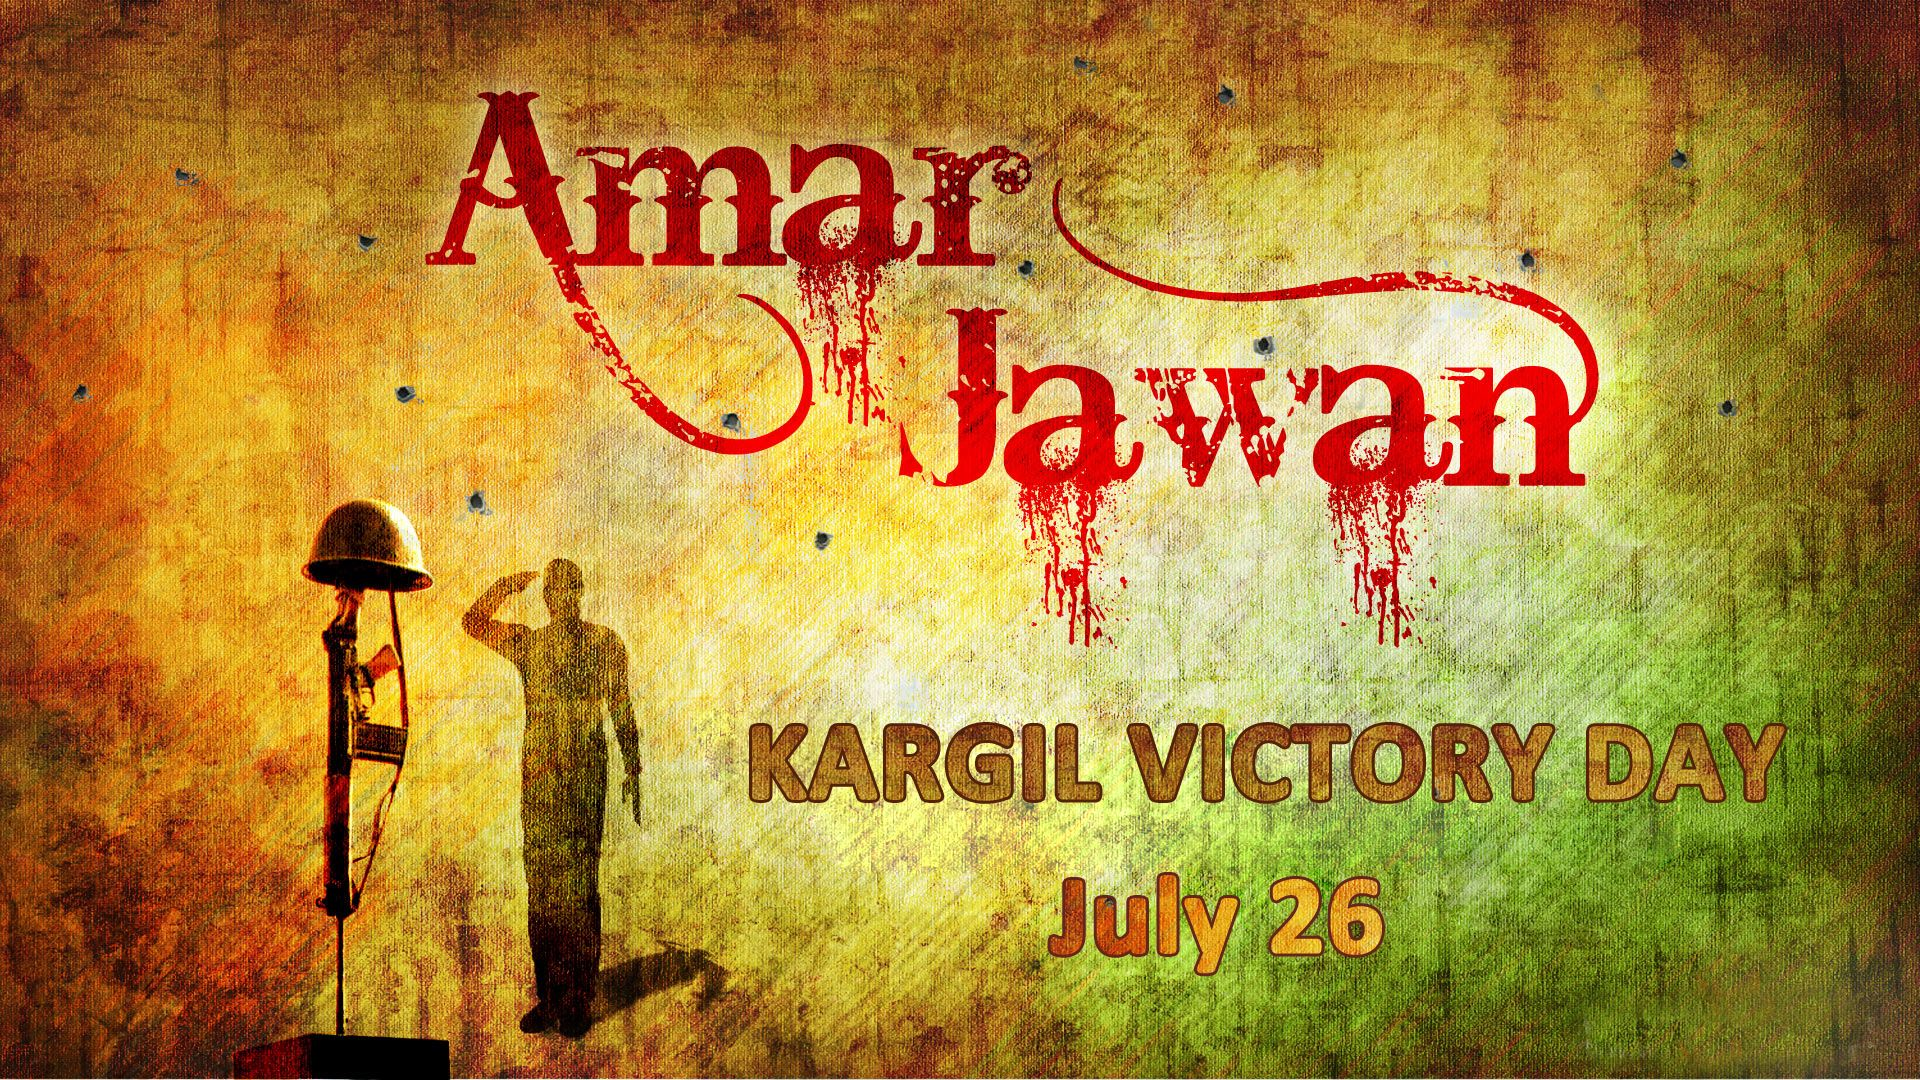 Kargil Vijay Diwas is Celebrating on 26th July 2015 Check out 1920x1080